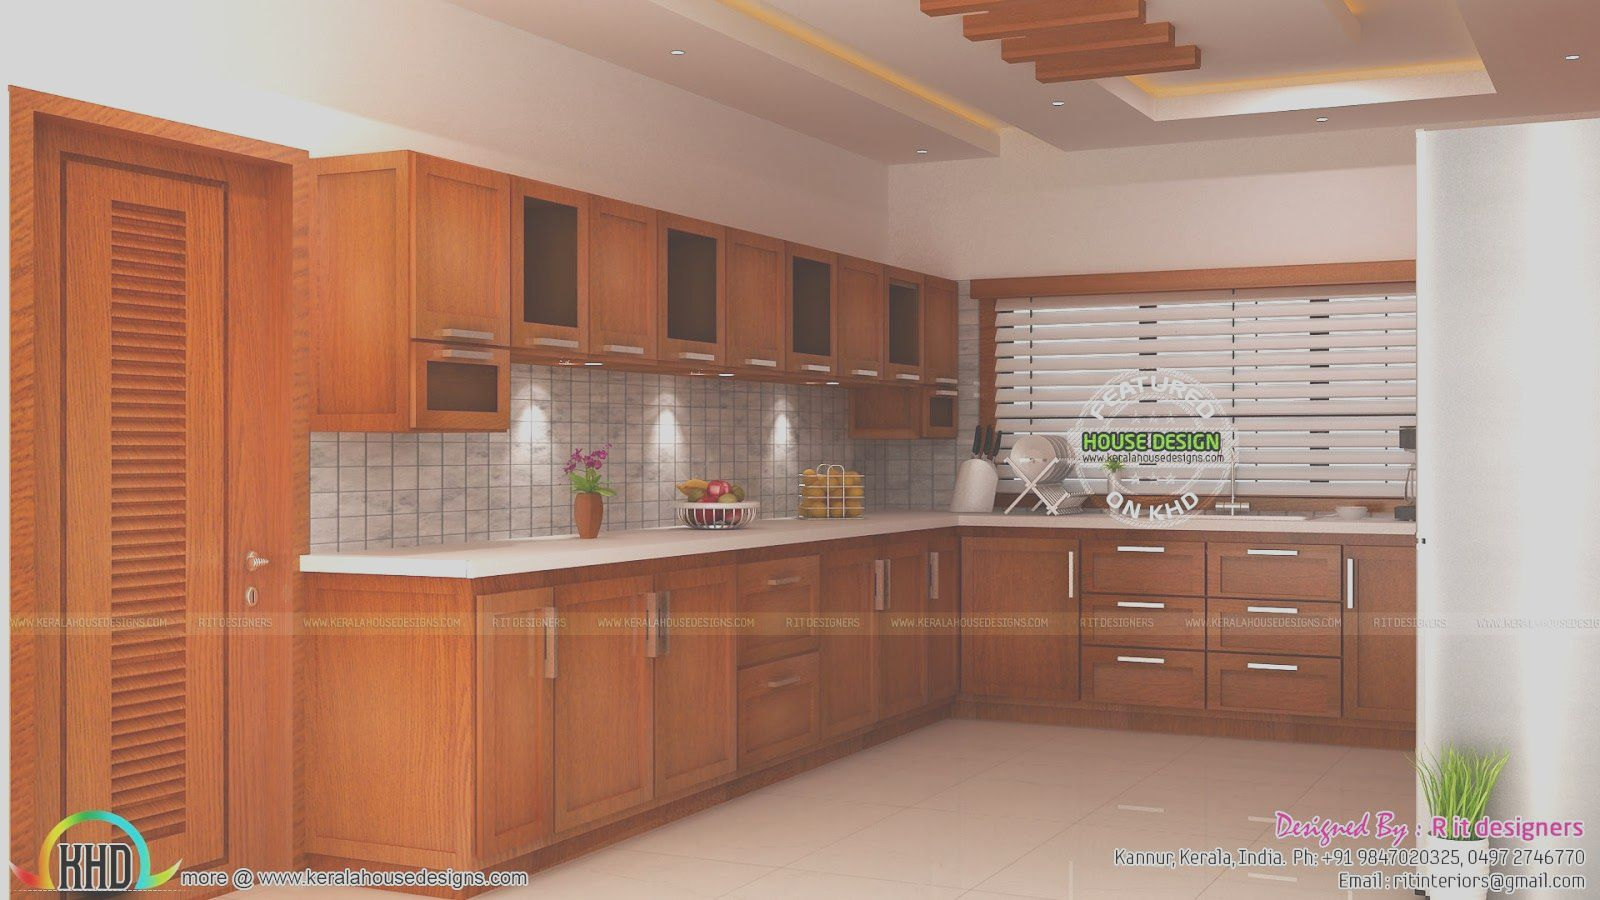 Modular Kitchen Living And Bedroom Interior Kerala Home In 2020 Interior Design Kitchen Kitchen Furniture Design Images Kitchen Cabinet Design Photos